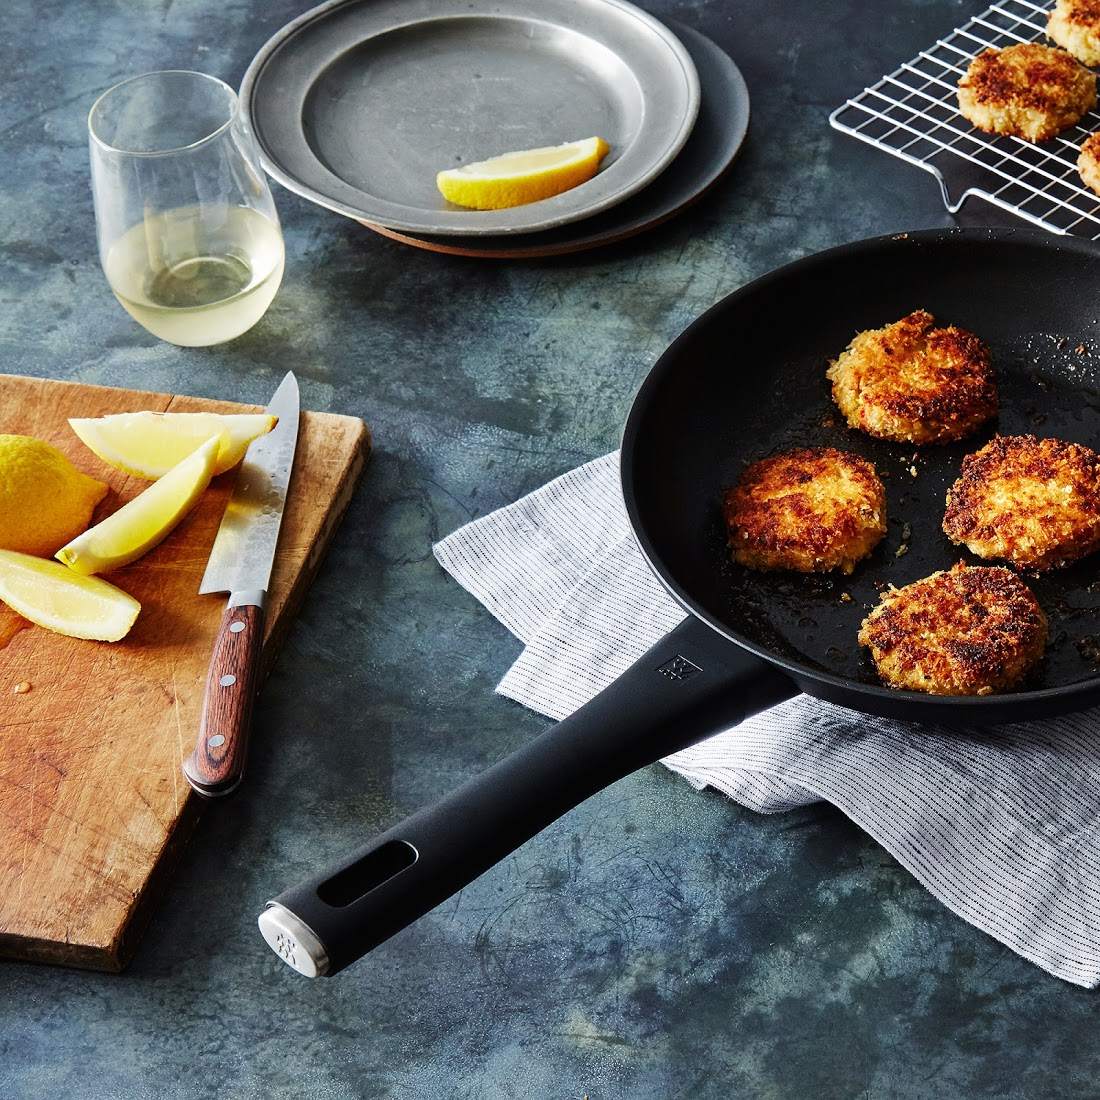 Zwilling Madura Plus Nonstick Fry Pan - ultimate nonstick pan